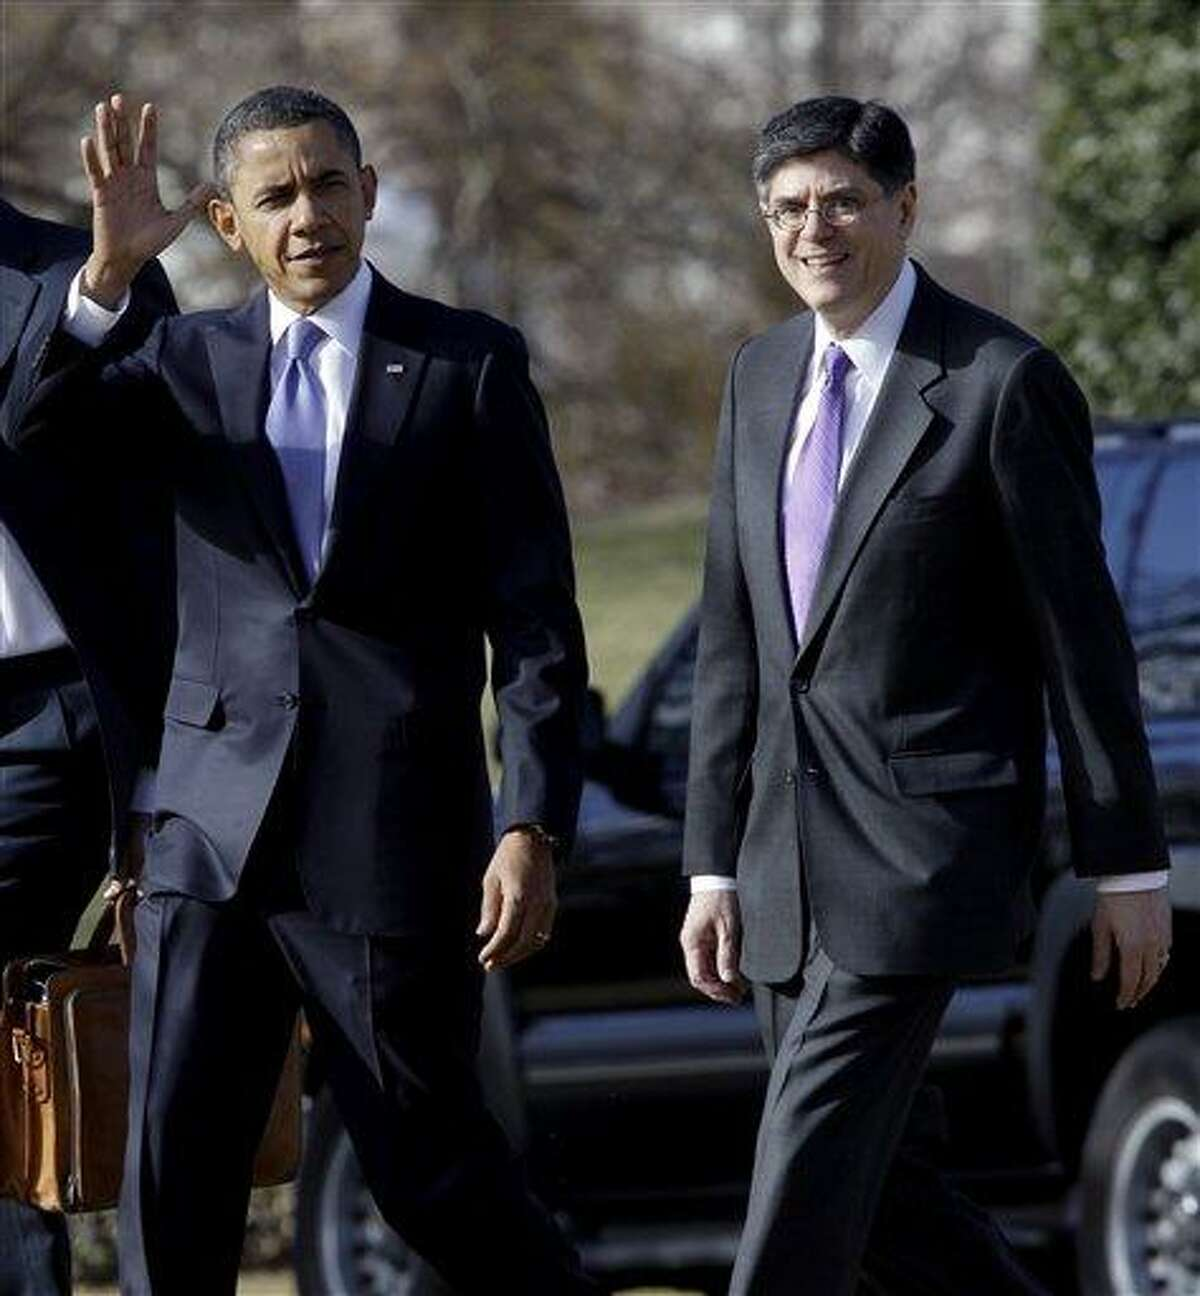 FILE - In this Feb. 14, 2011 file photo, President Barack Obama walks with Budget Director Jack Lew on the South Lawn of the White House in Washington. Two senior administration officials say the White House chief of staff, William Daley, is resigning. He's being replaced by Jacob Lew. (AP Photo/Charles Dharapak, File)